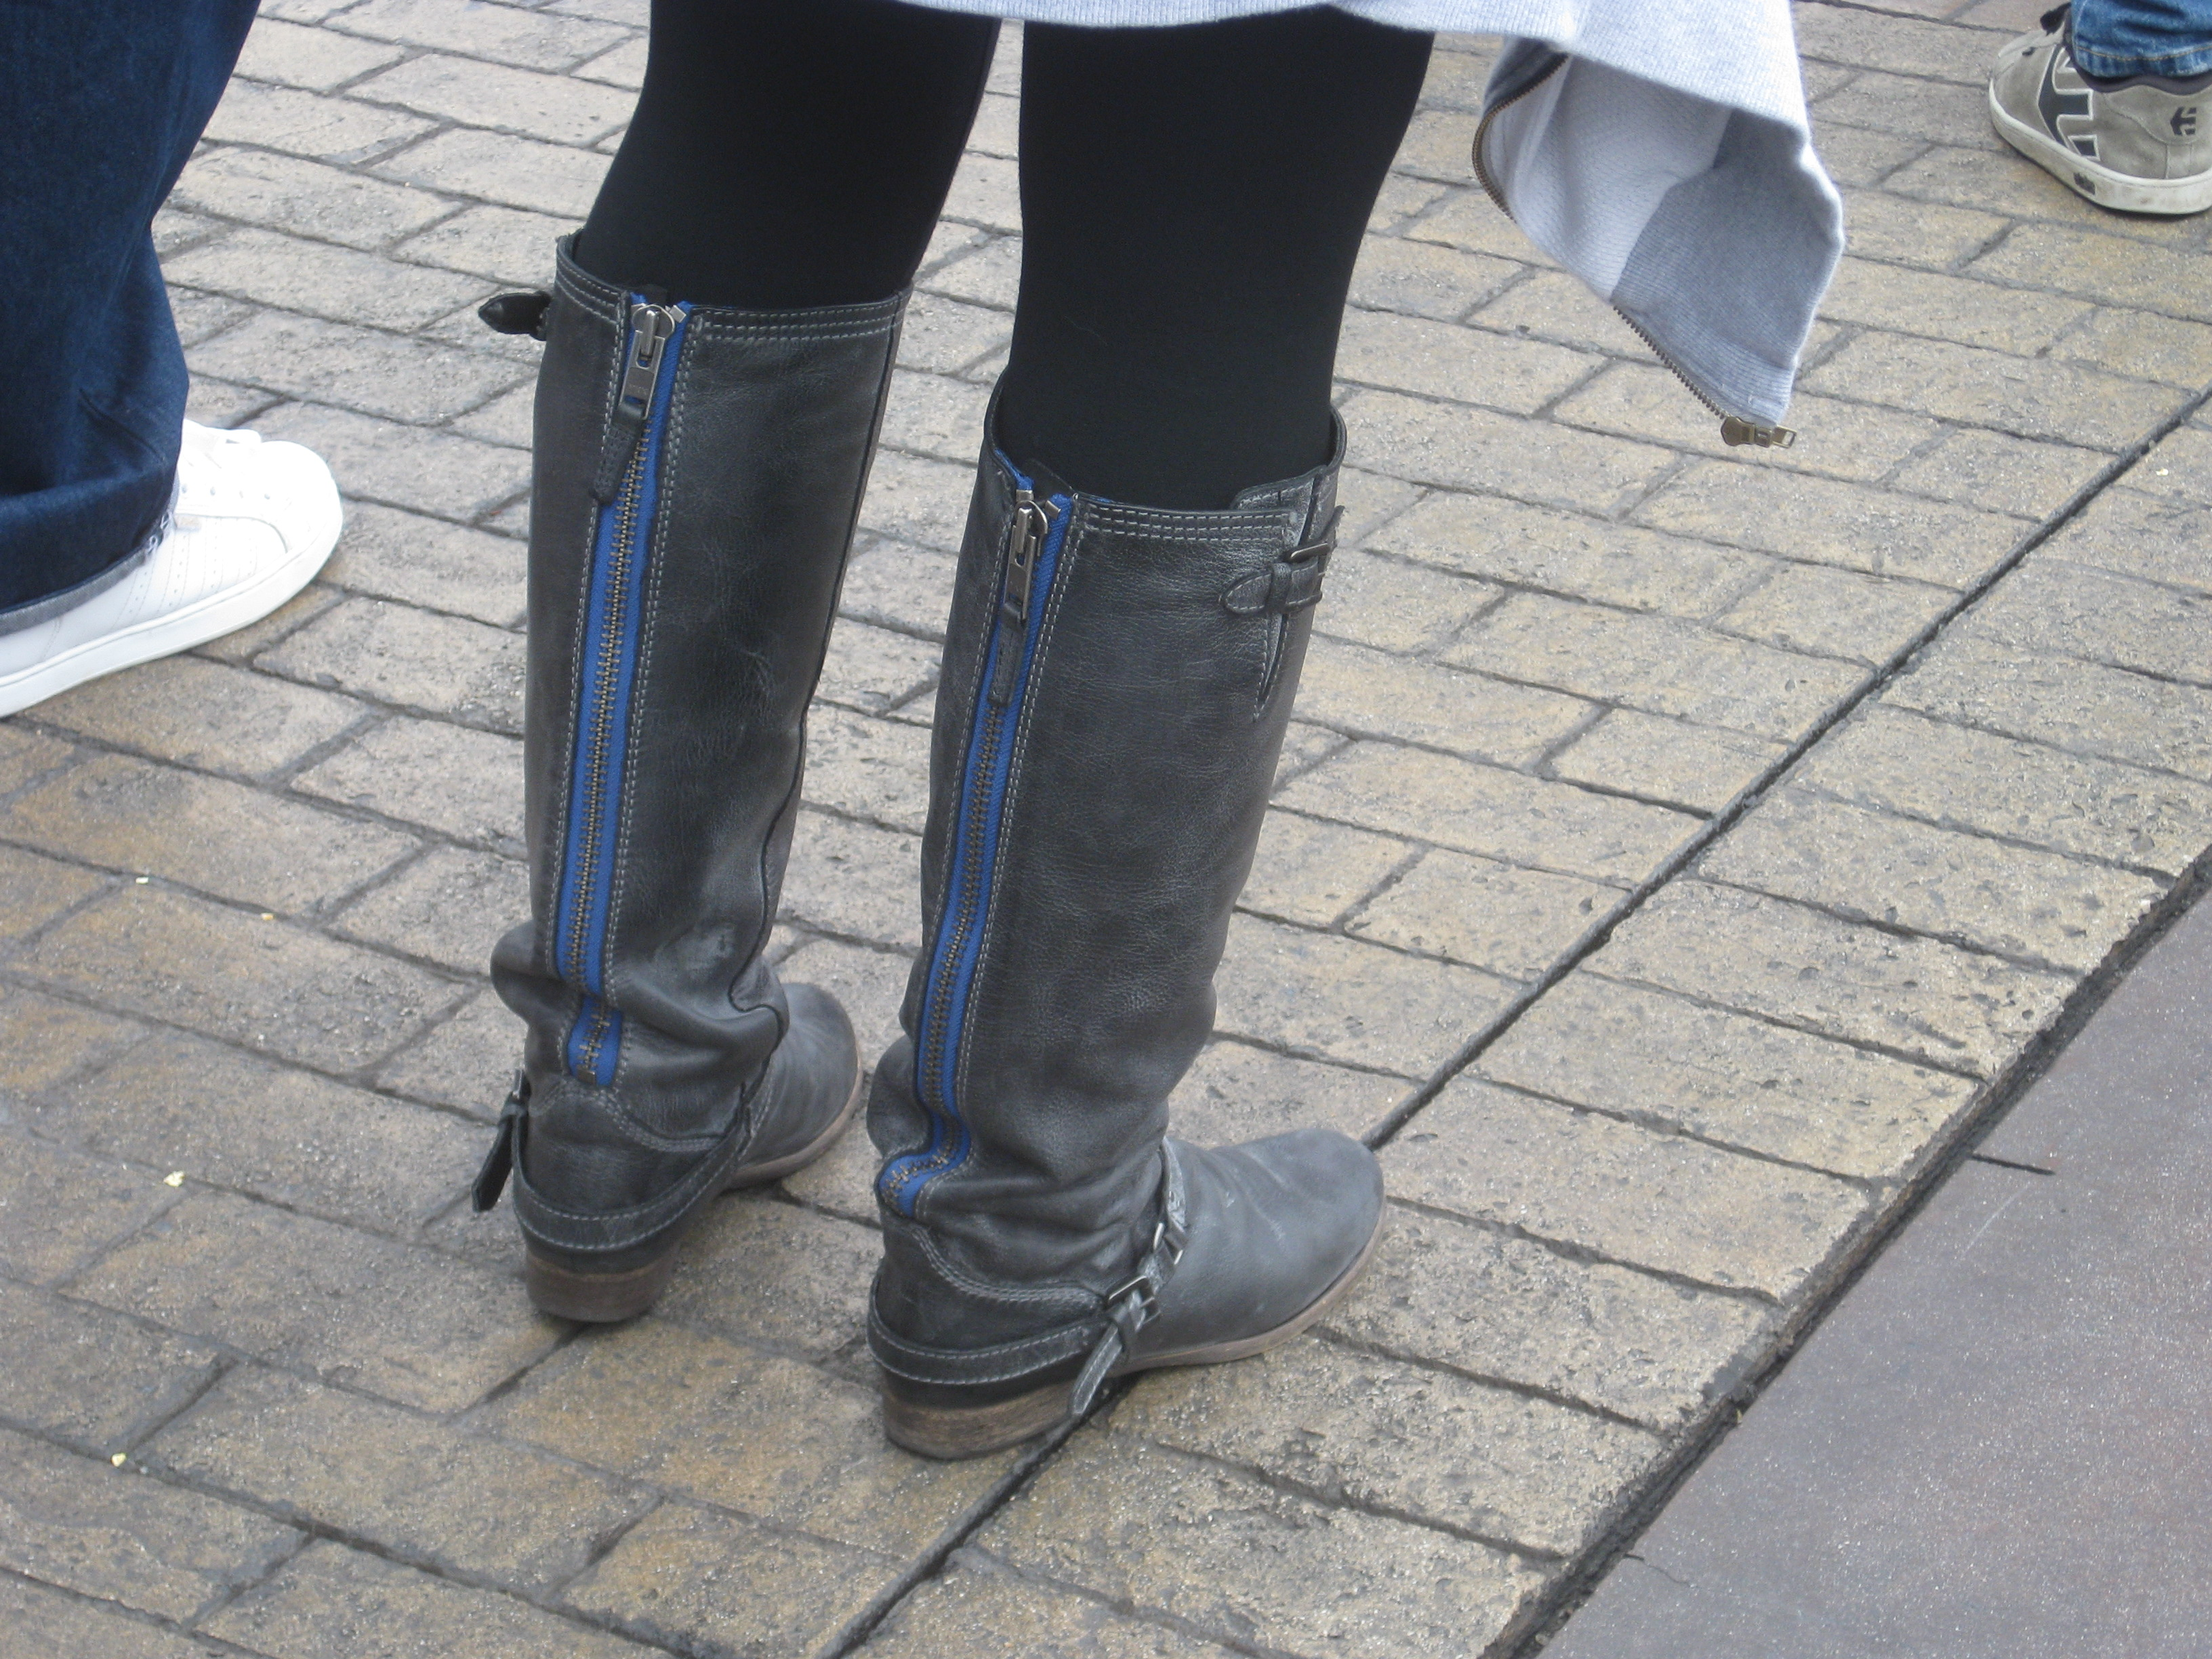 Undomestic Diva: Reward Offered. Find these boots. (Yes, I've got ...